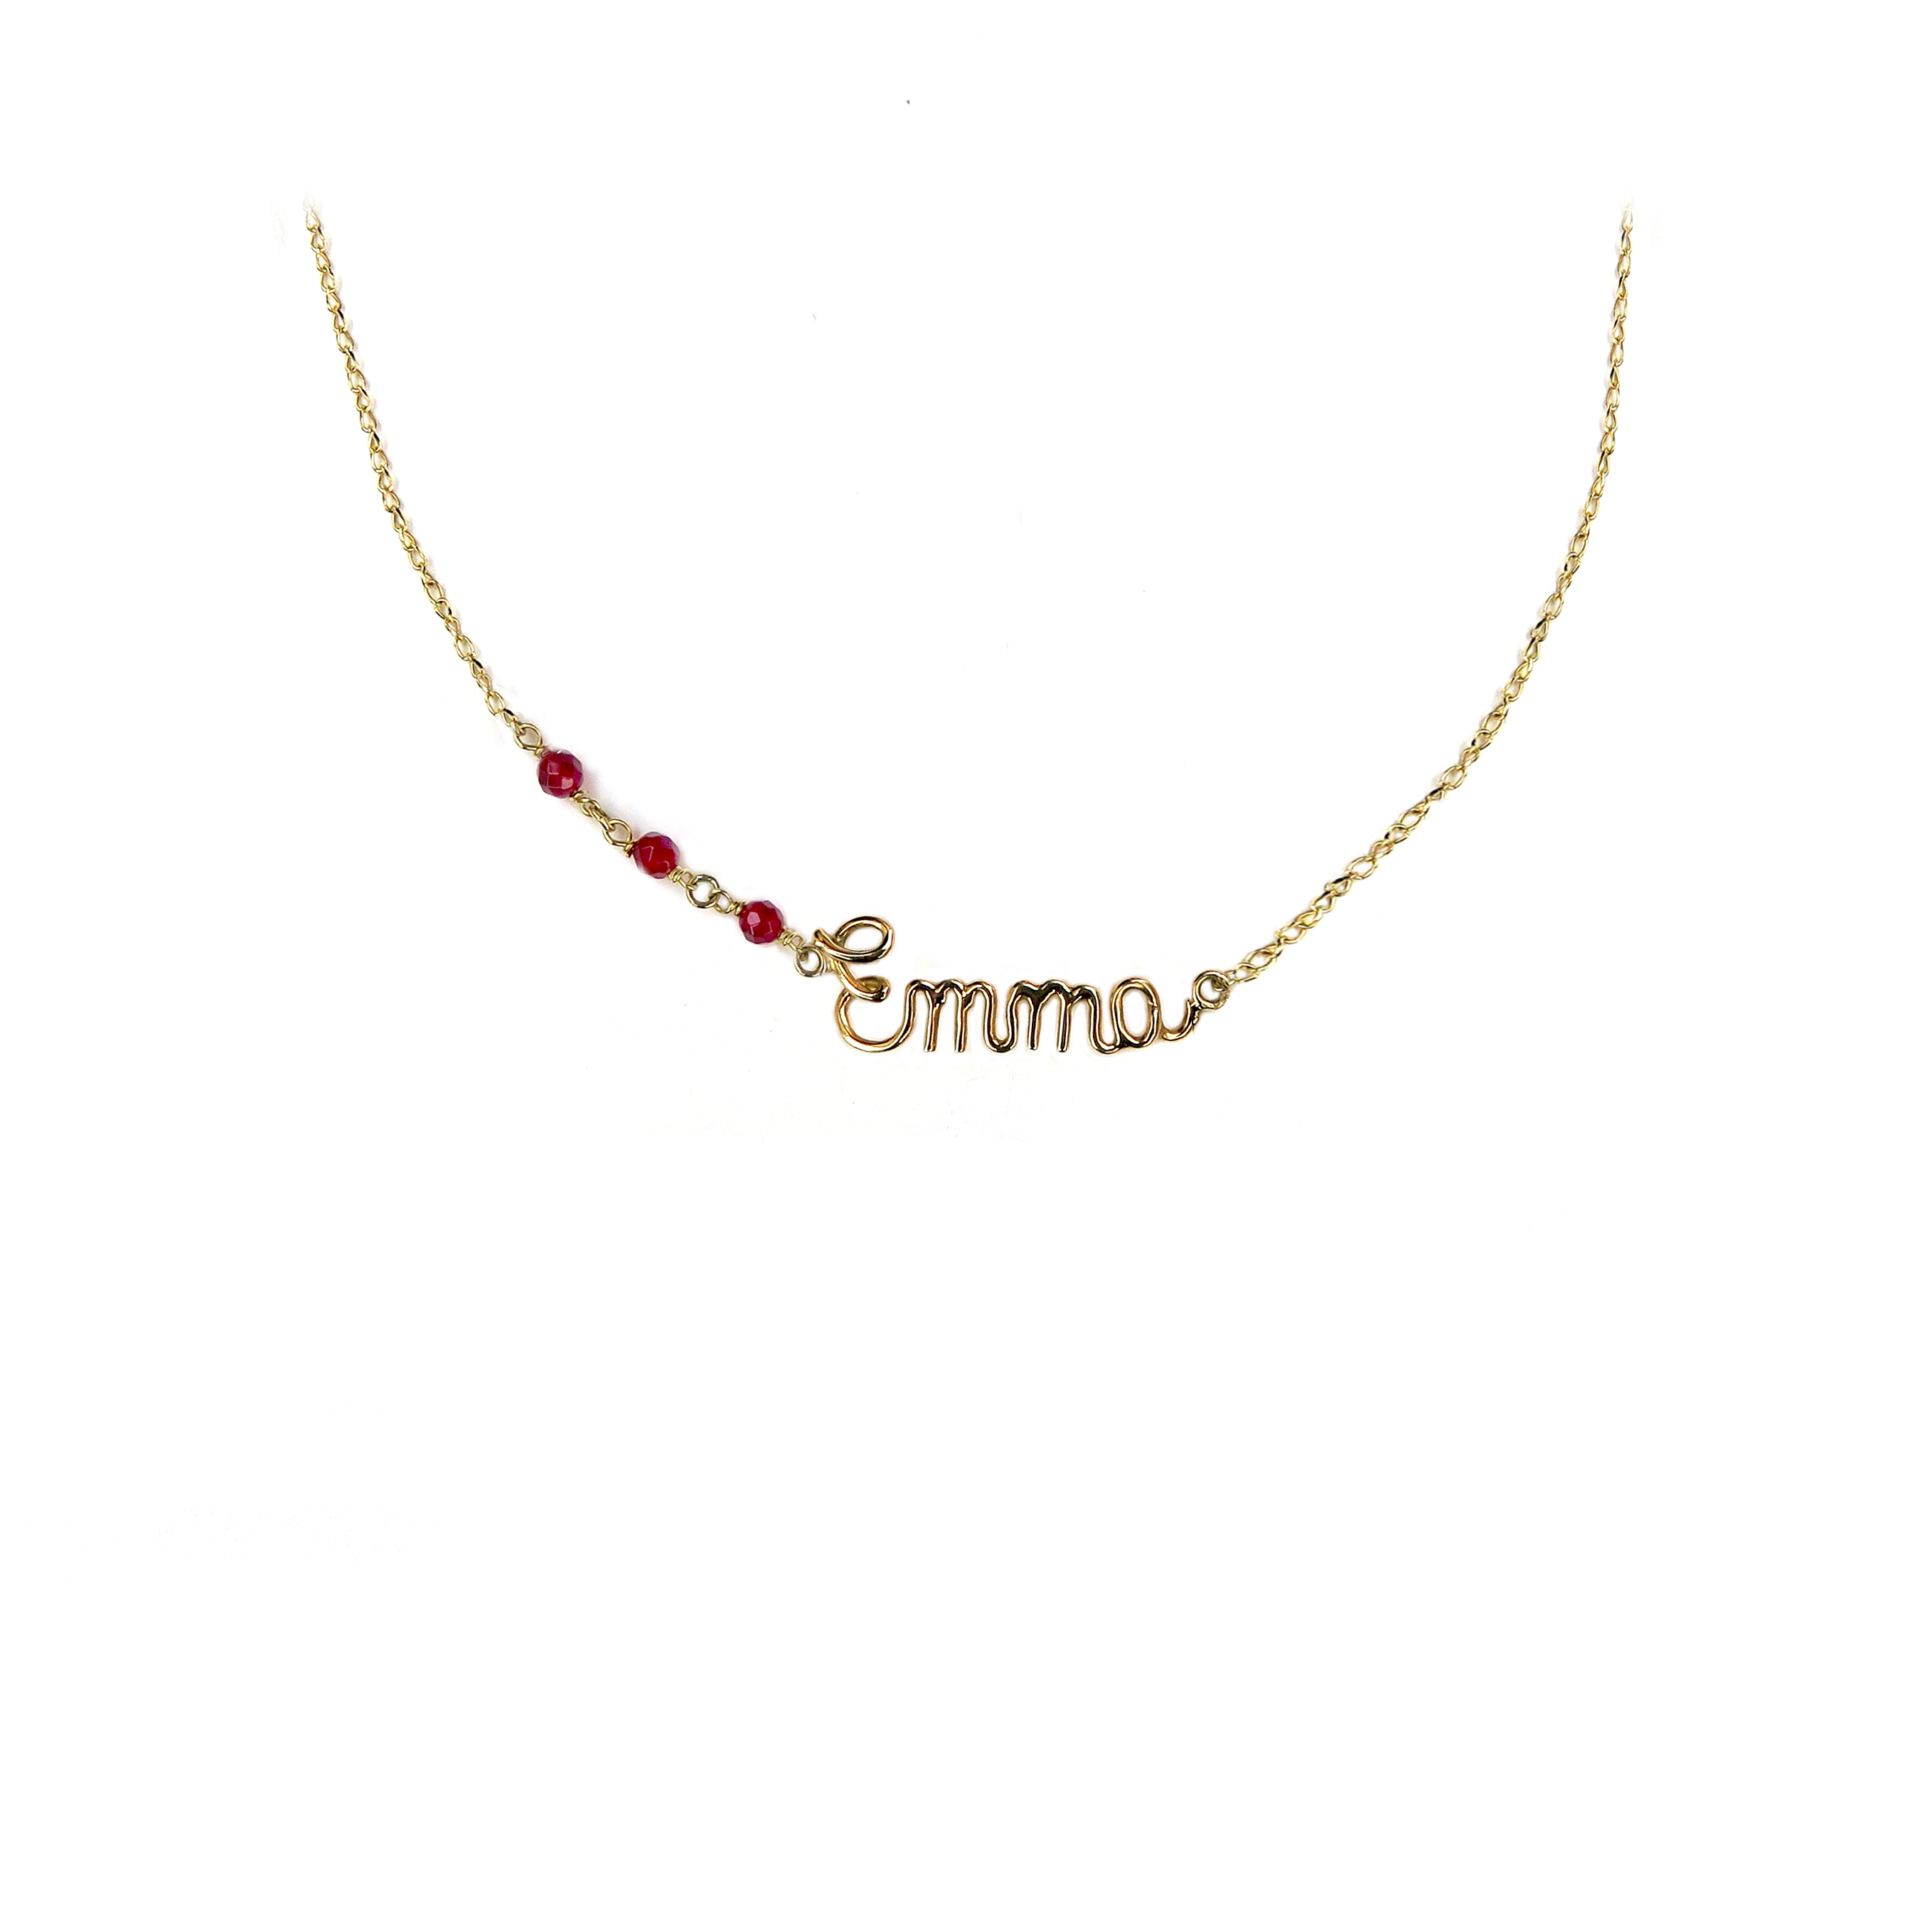 heartstring buchanan name inspirational jewellery necklace fine sydney heartstrings and